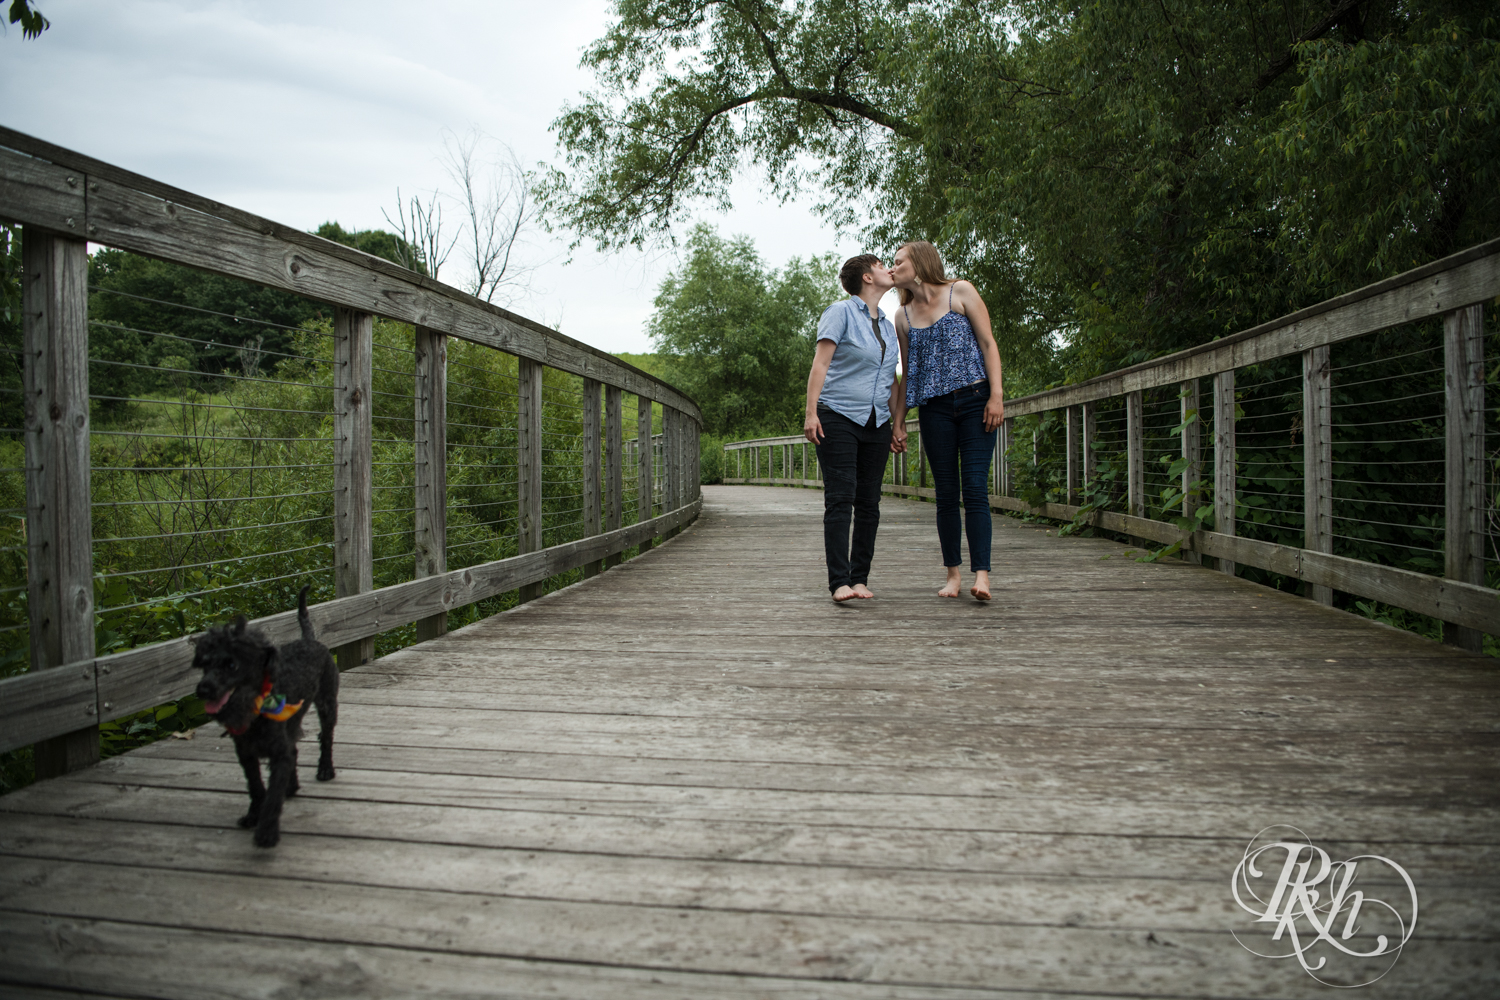 Ashley & Chelsea - Minnesota LGBT Photography - RKH Images   (8 of 13).jpg